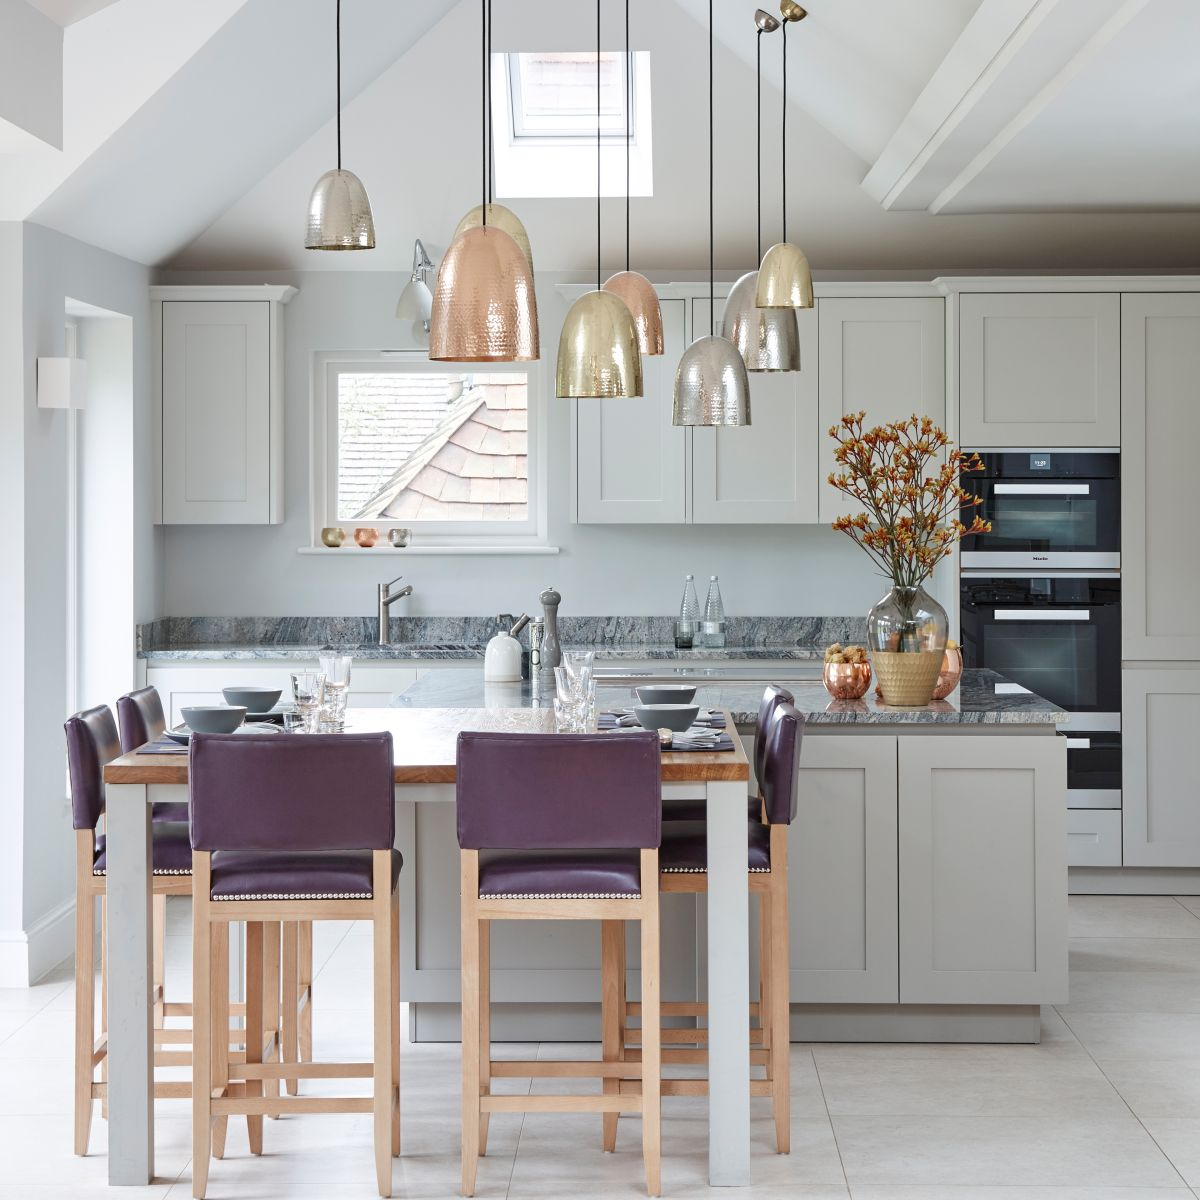 Overhead Kitchen Lighting Ideas: How To Plan Kitchen Lighting